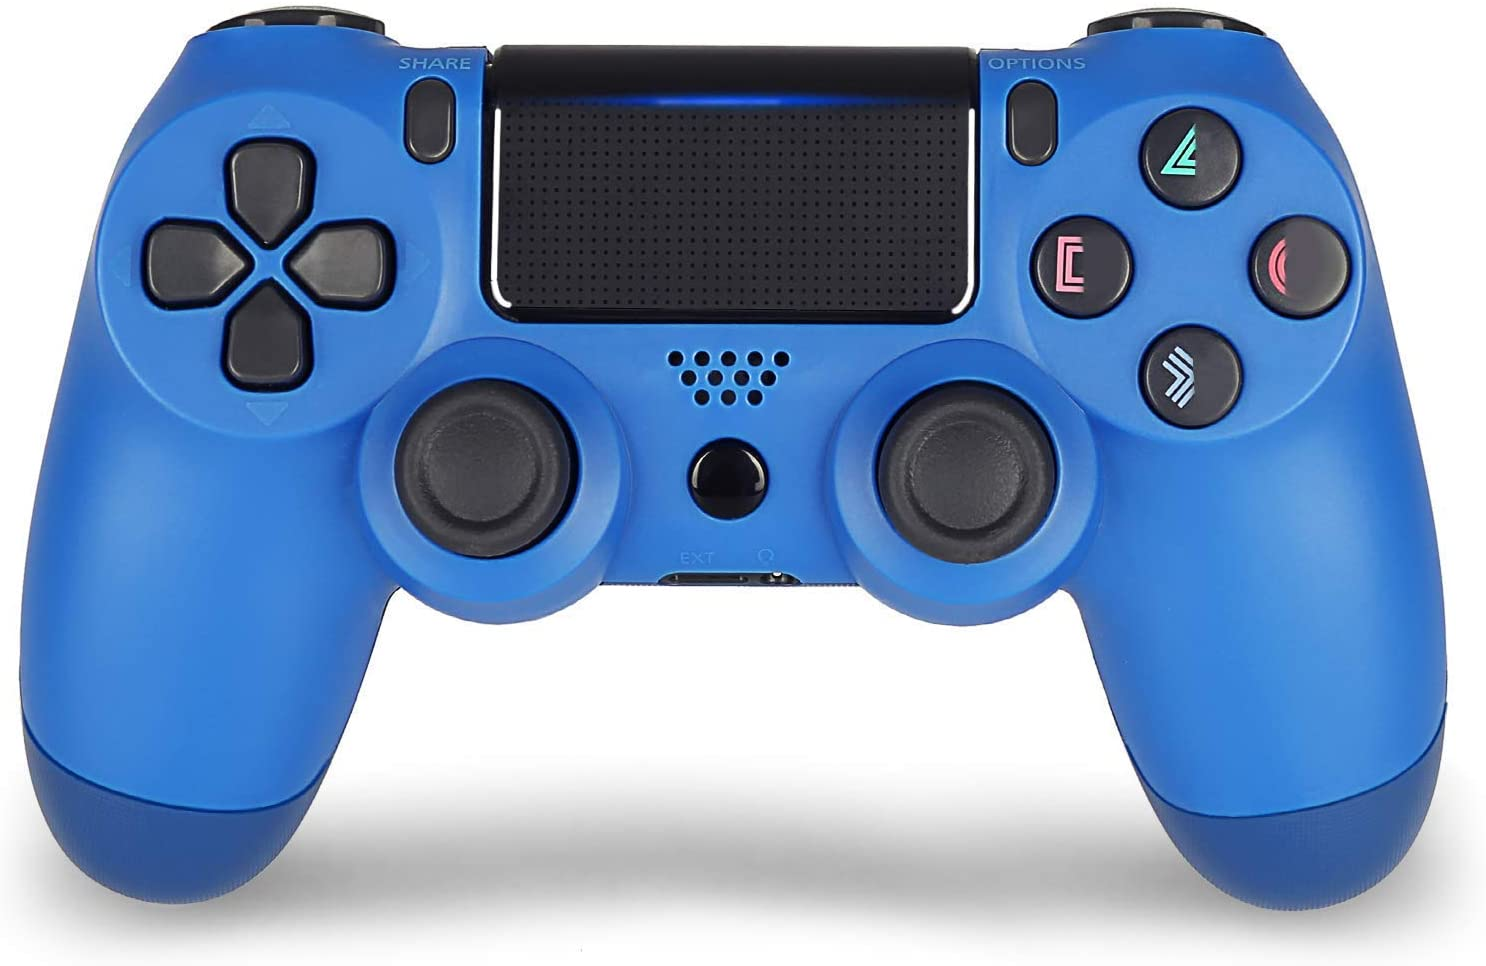 Wiireless Controllers for PS4 , AO Remote for DualShock 4, Game Control Compatible for Playstation 4,  Blue (Renewed)